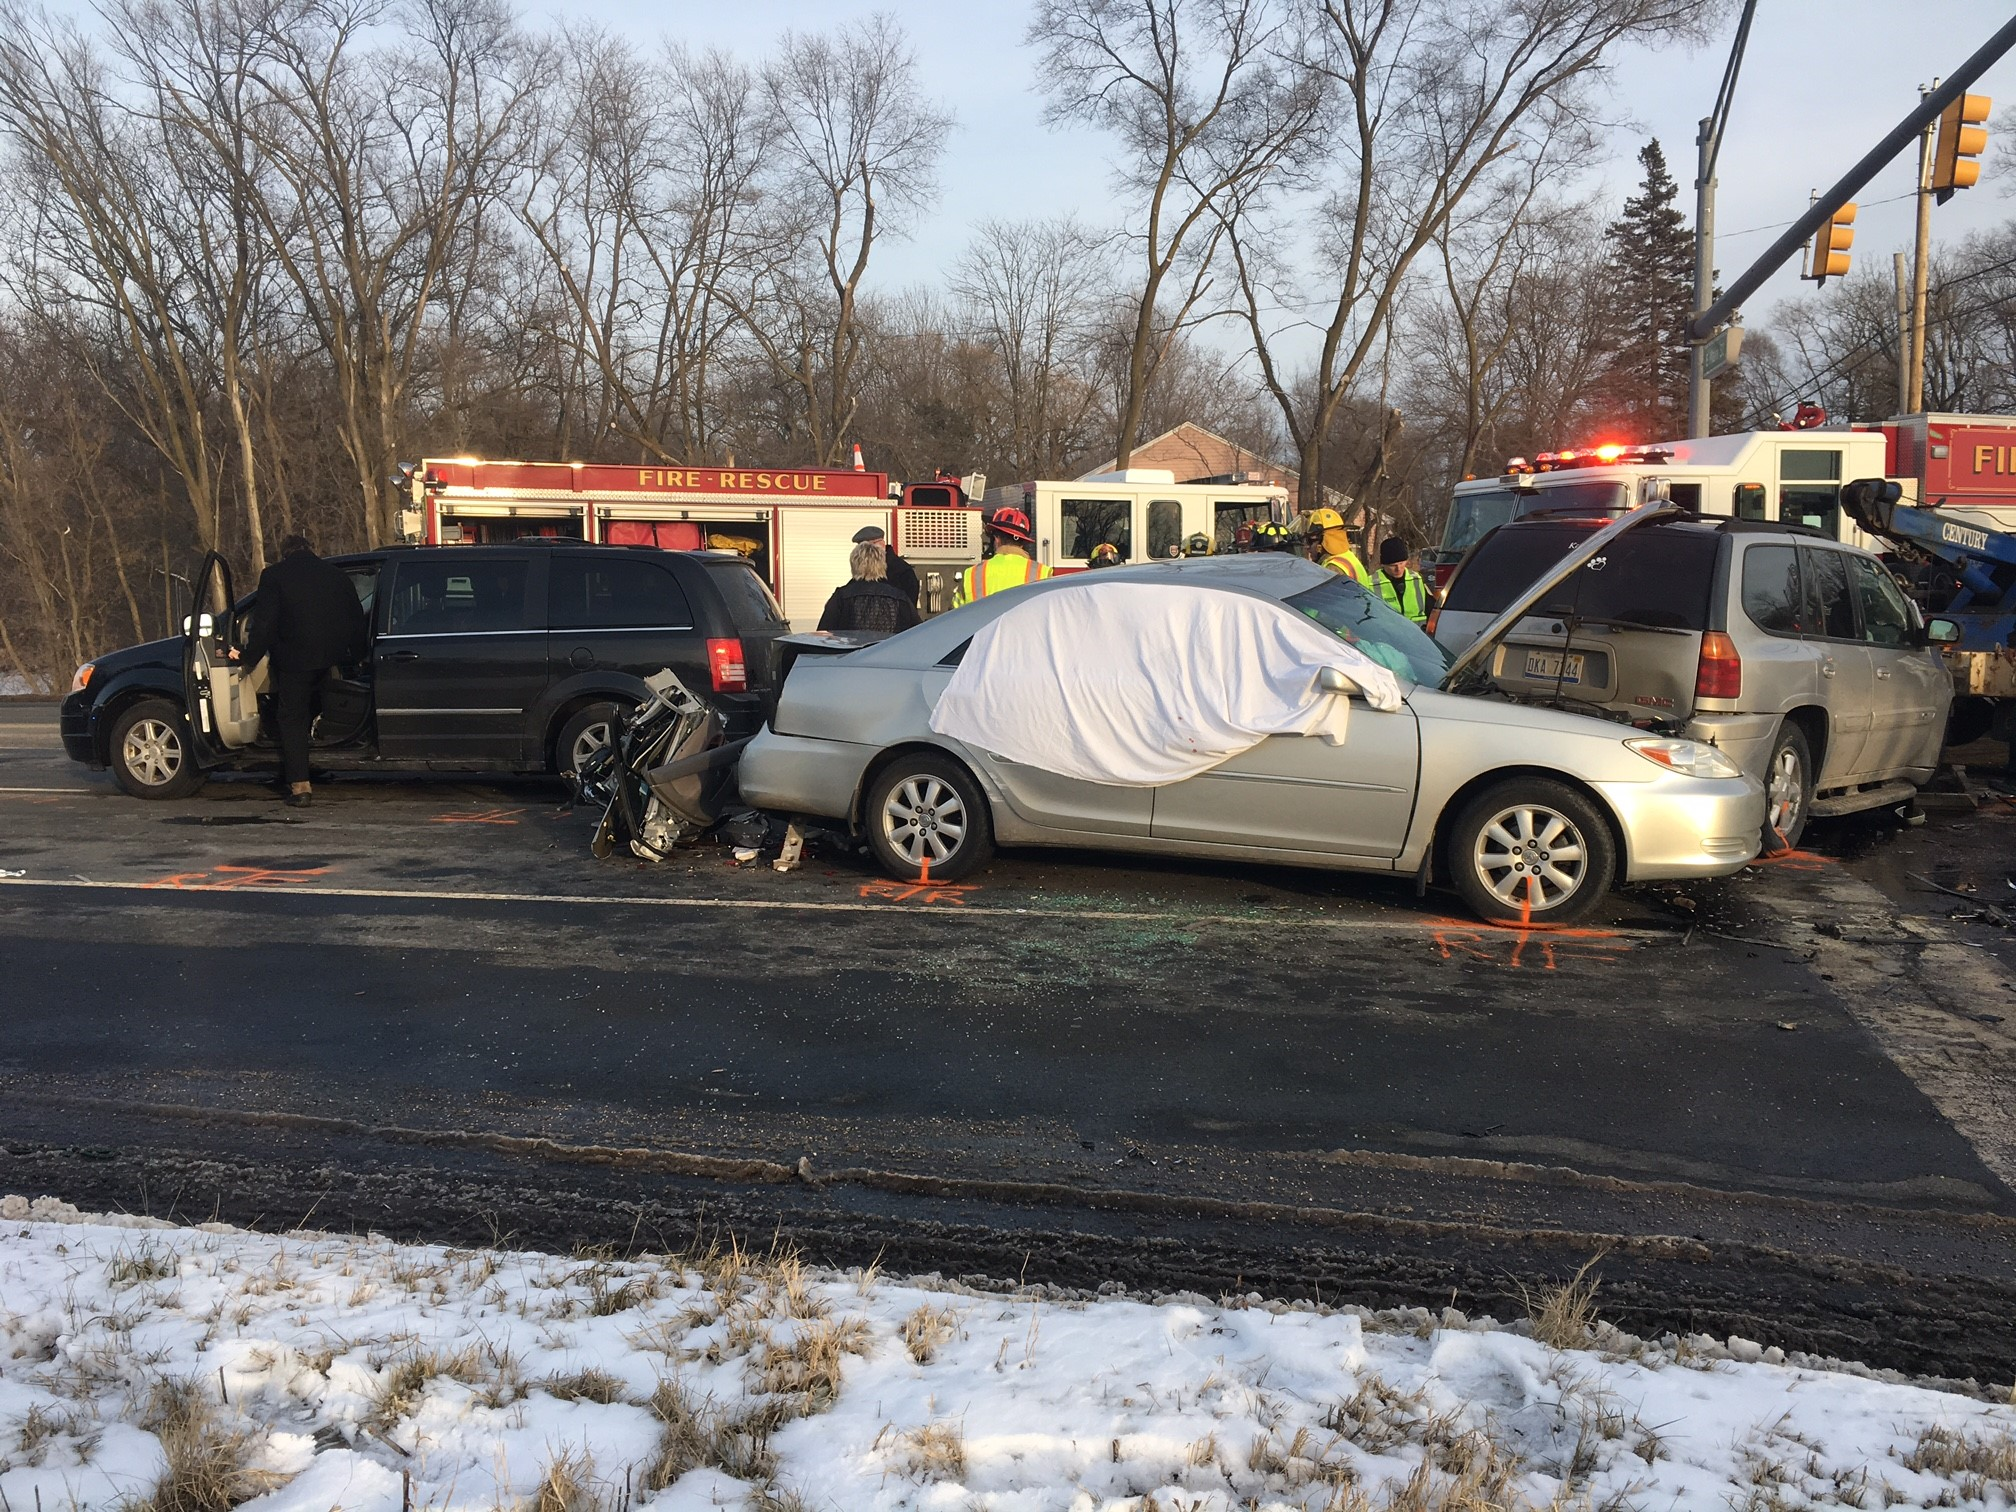 One person died and another is in critical condition following a four-car crash that forced the closure of the intersection of Sprinkle Road and East Main Street. (WWMT/Mike Krafcik)<p><br></p>